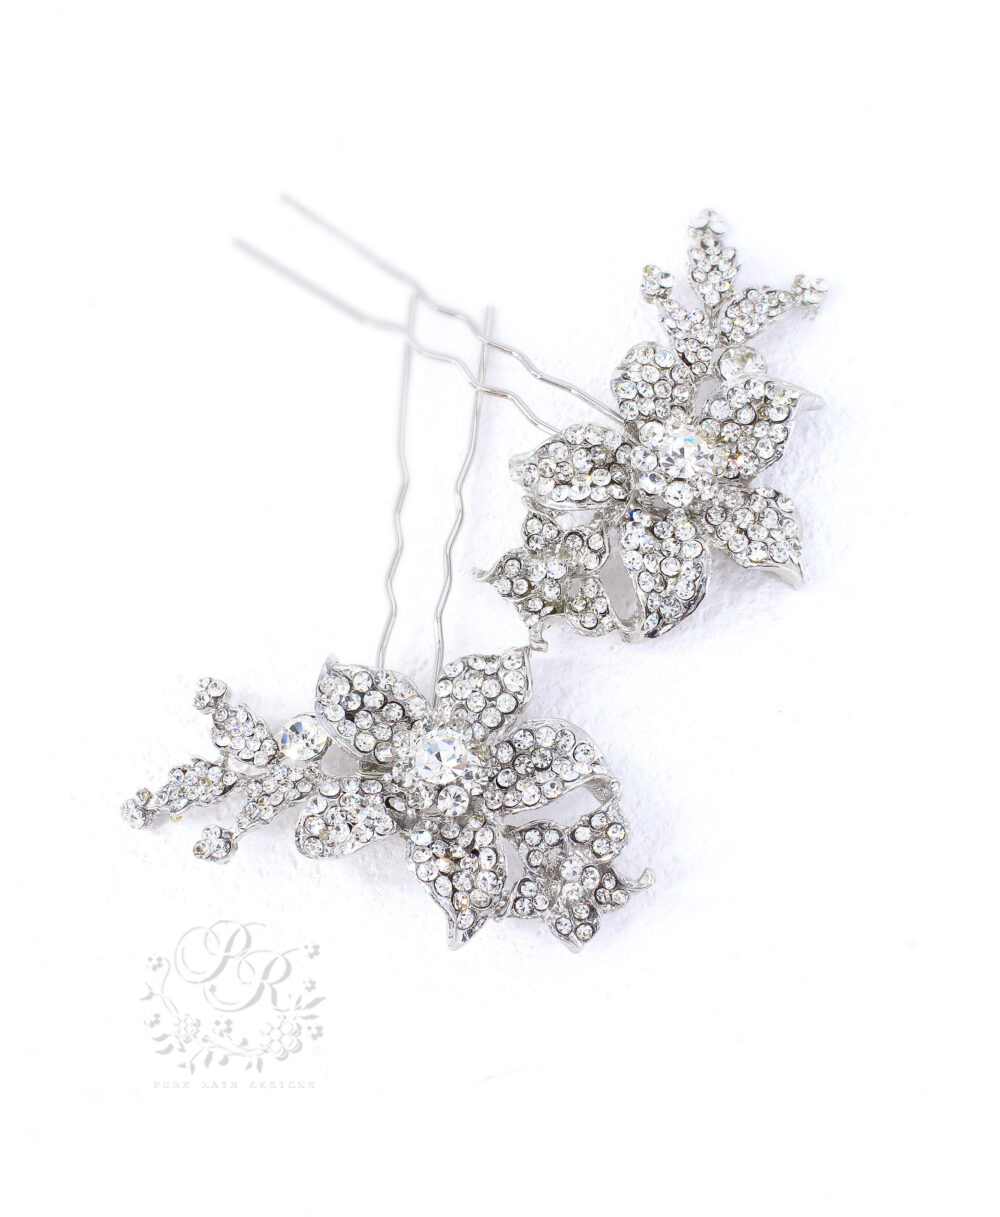 Set Of 2 Wedding Hair Comb Rhinestone Bridal Hair Pin Accessory Jewelry Accessory Bridesmaid Lily